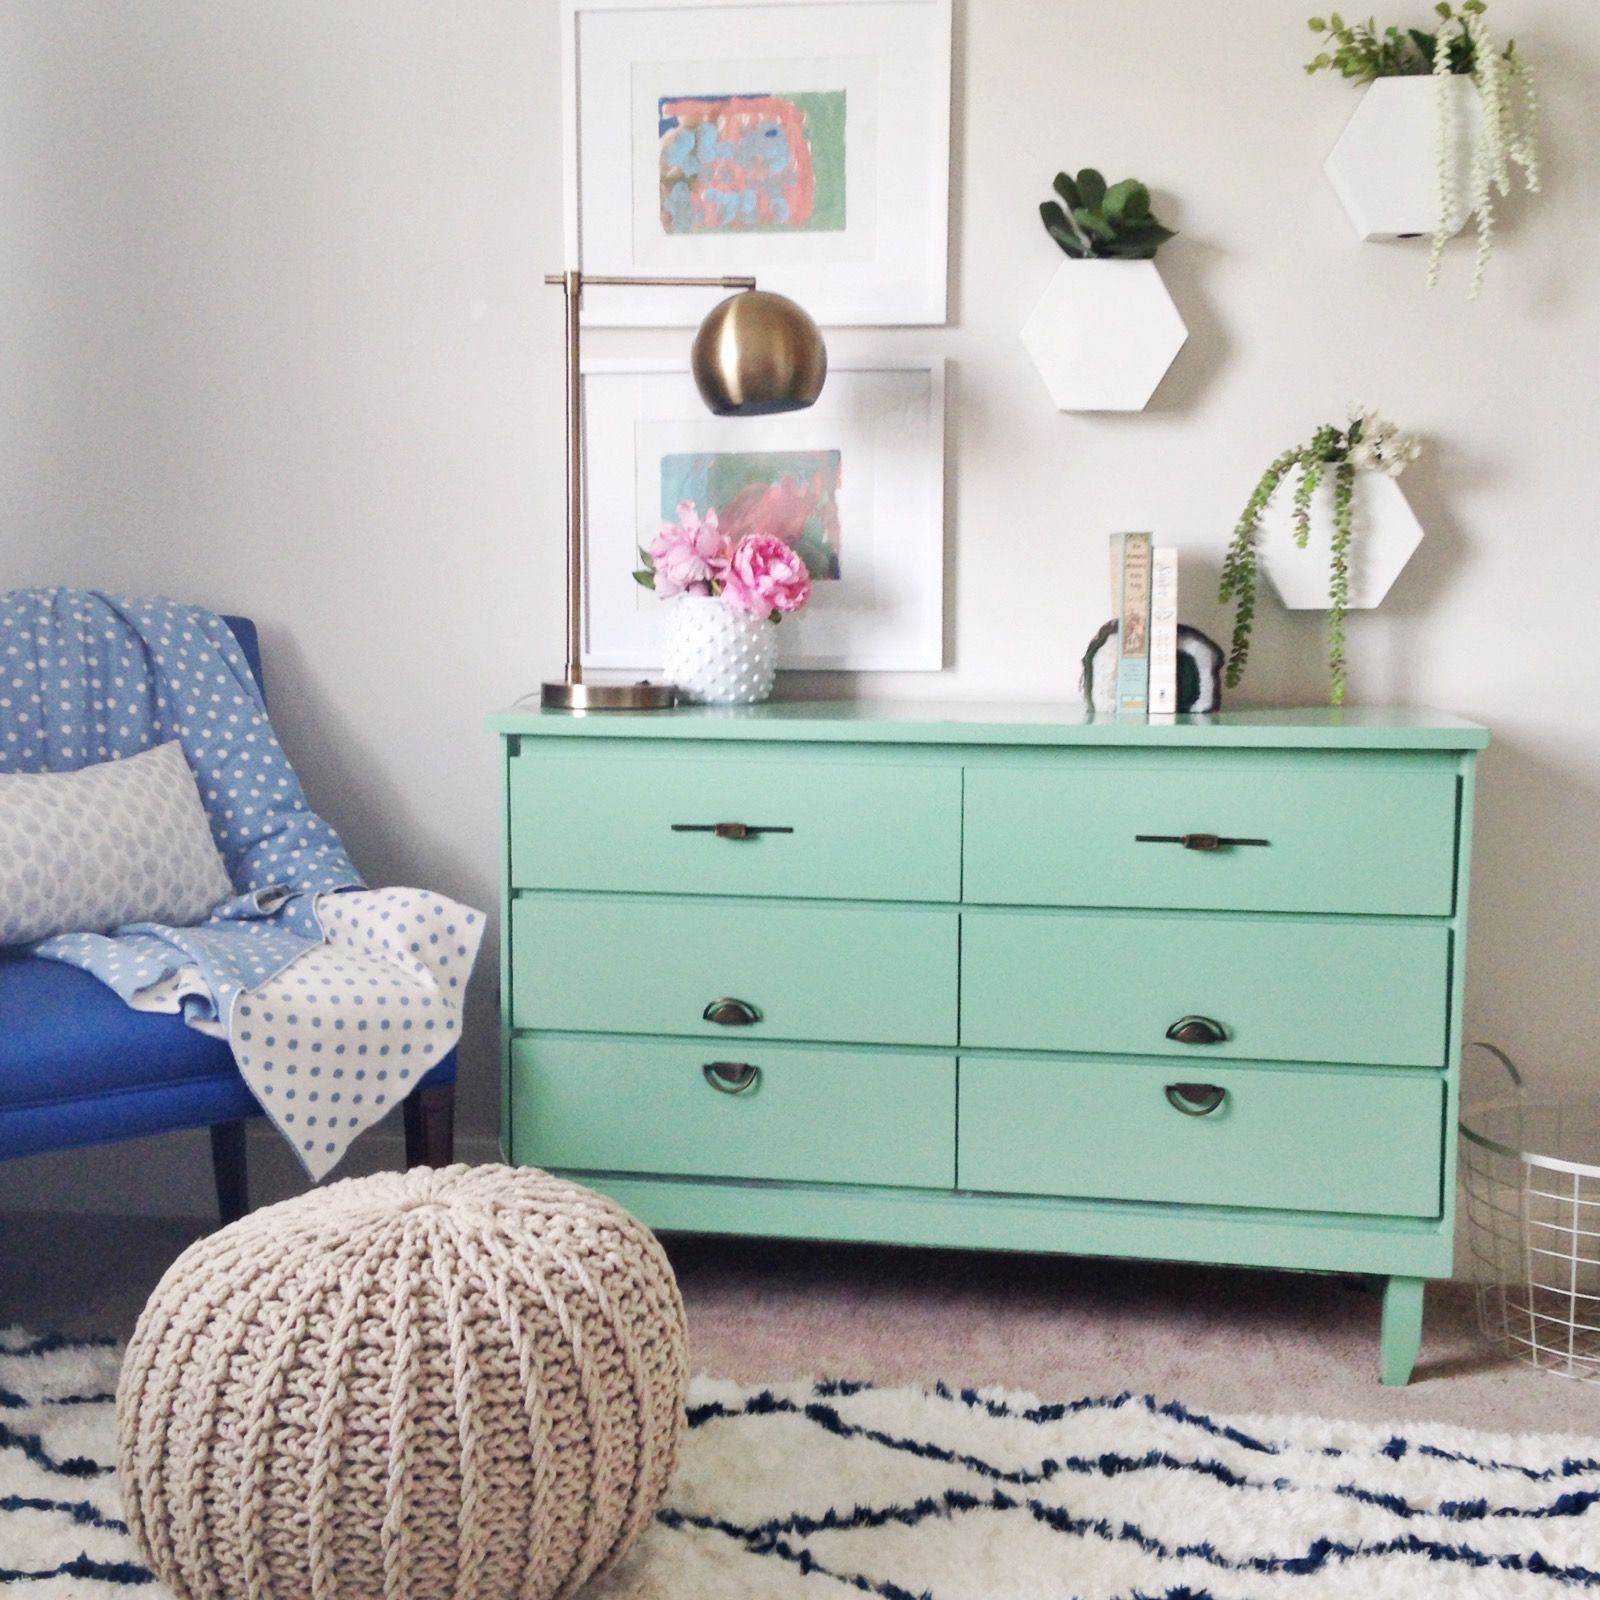 Five Things... Home decor, Cottage style decor, Dresser